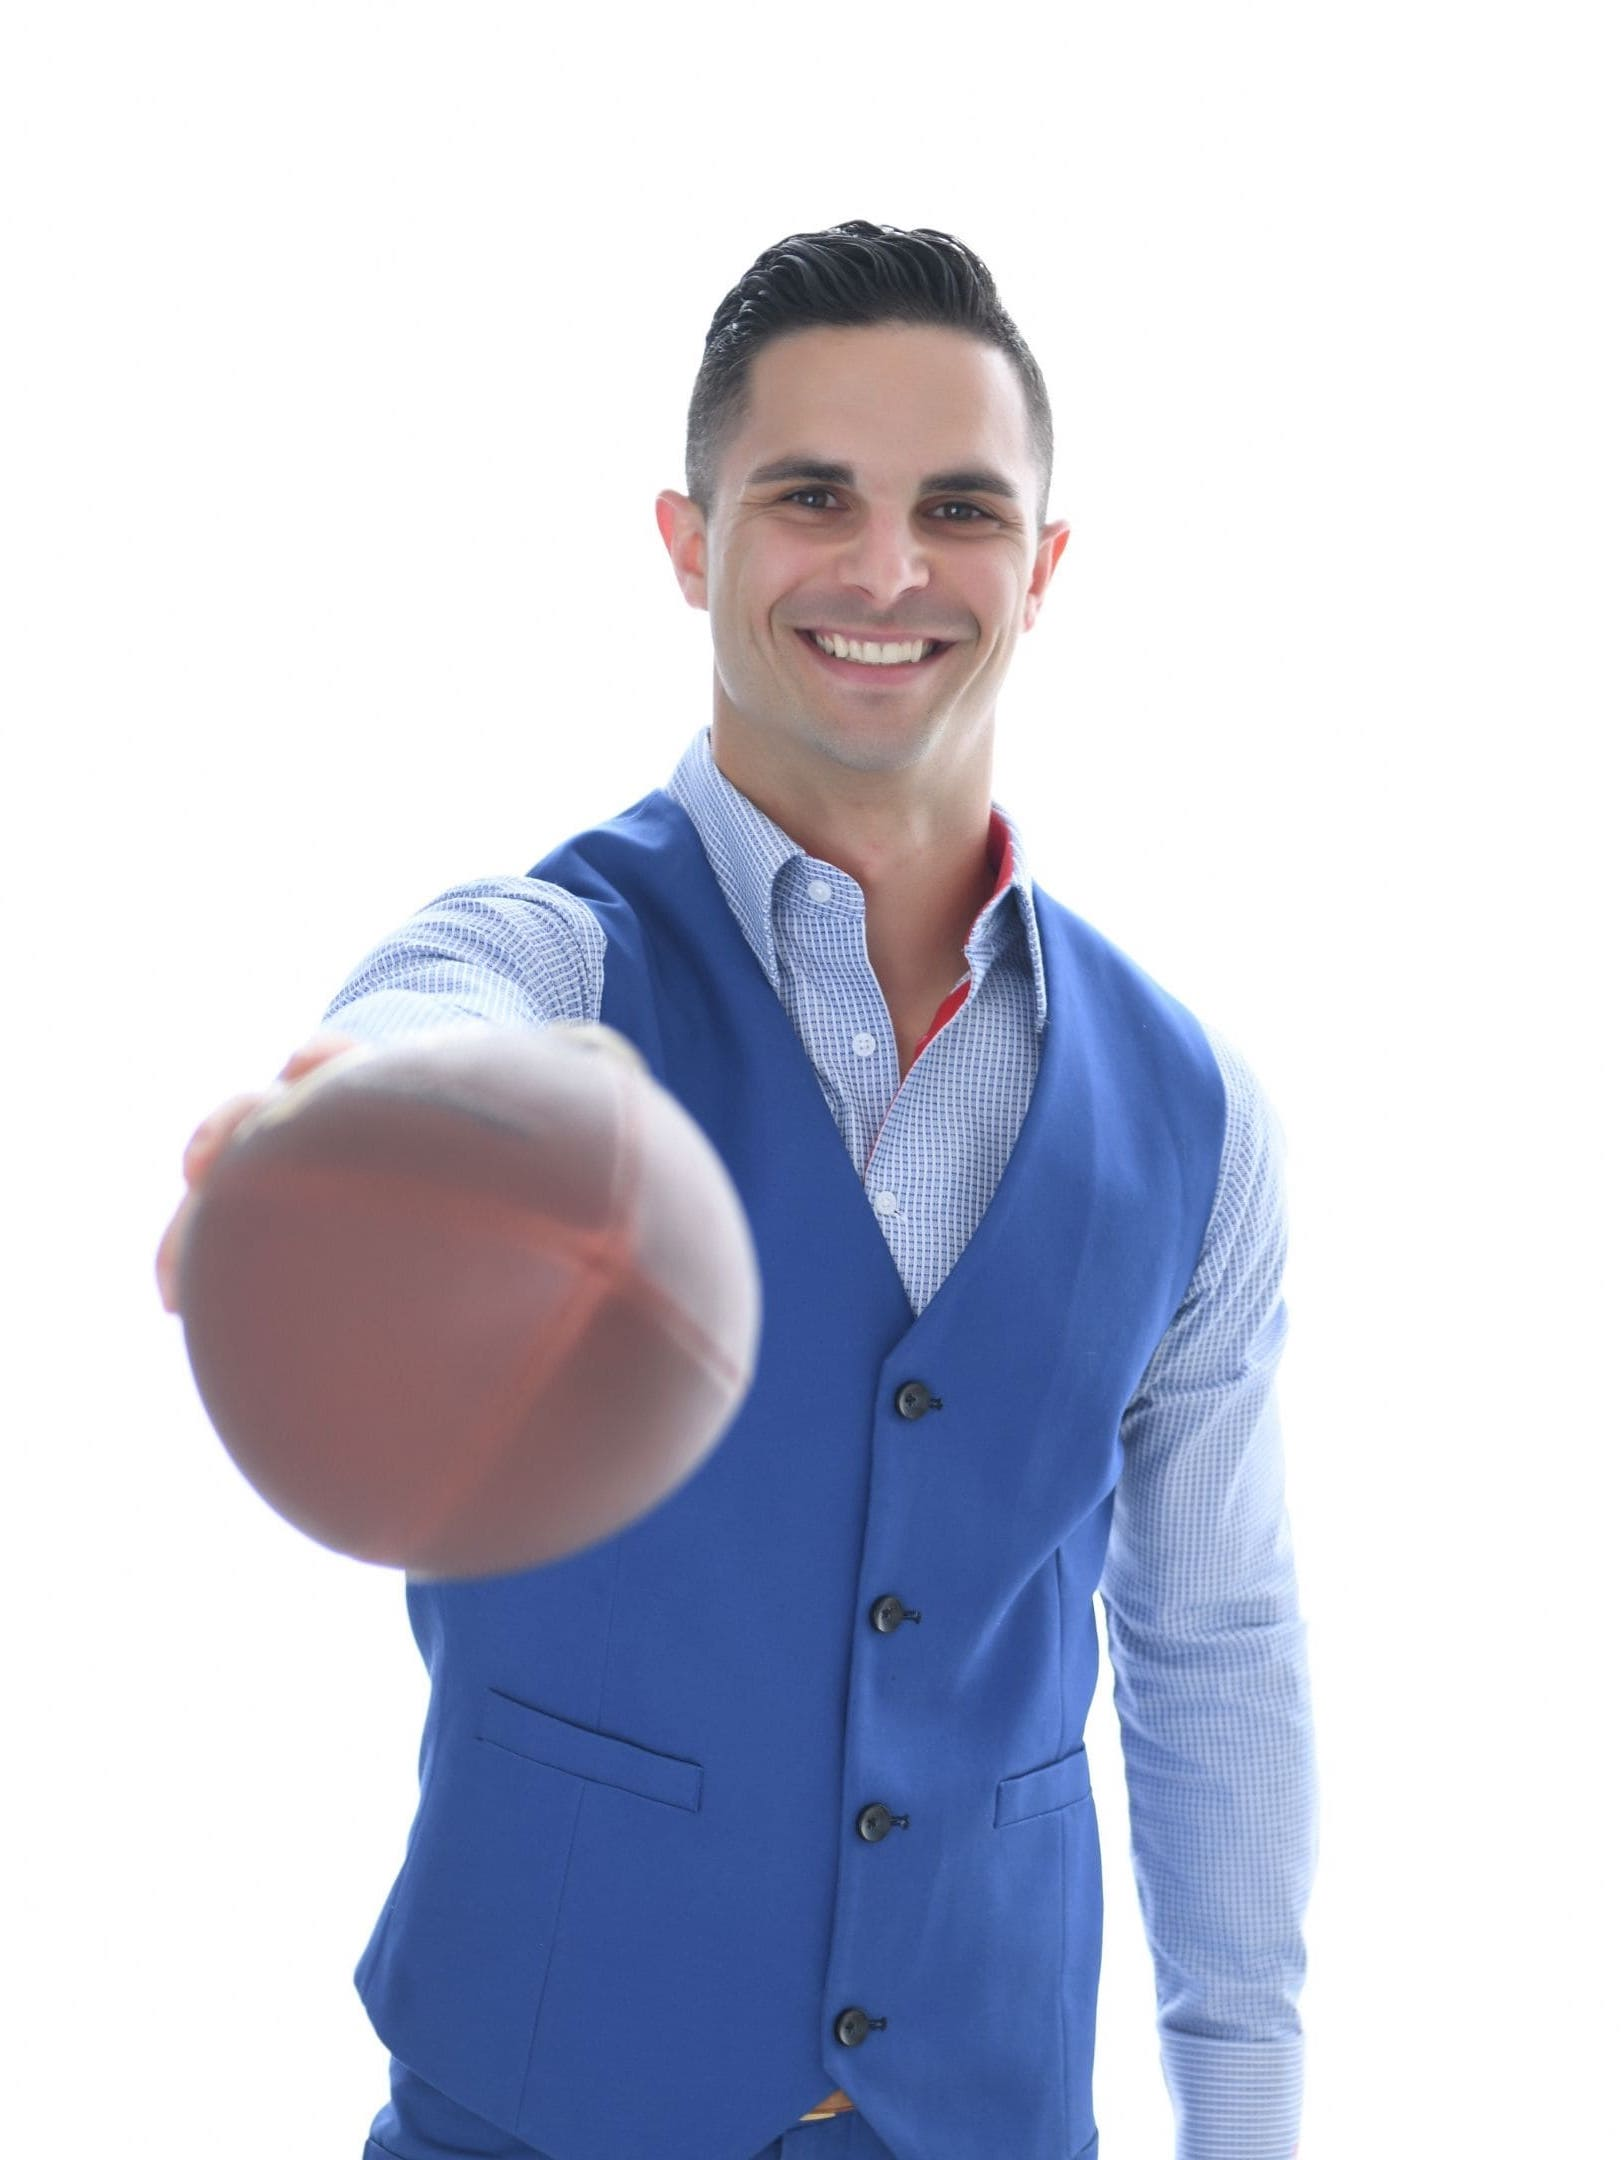 Photo of Richie holding a football in front of him